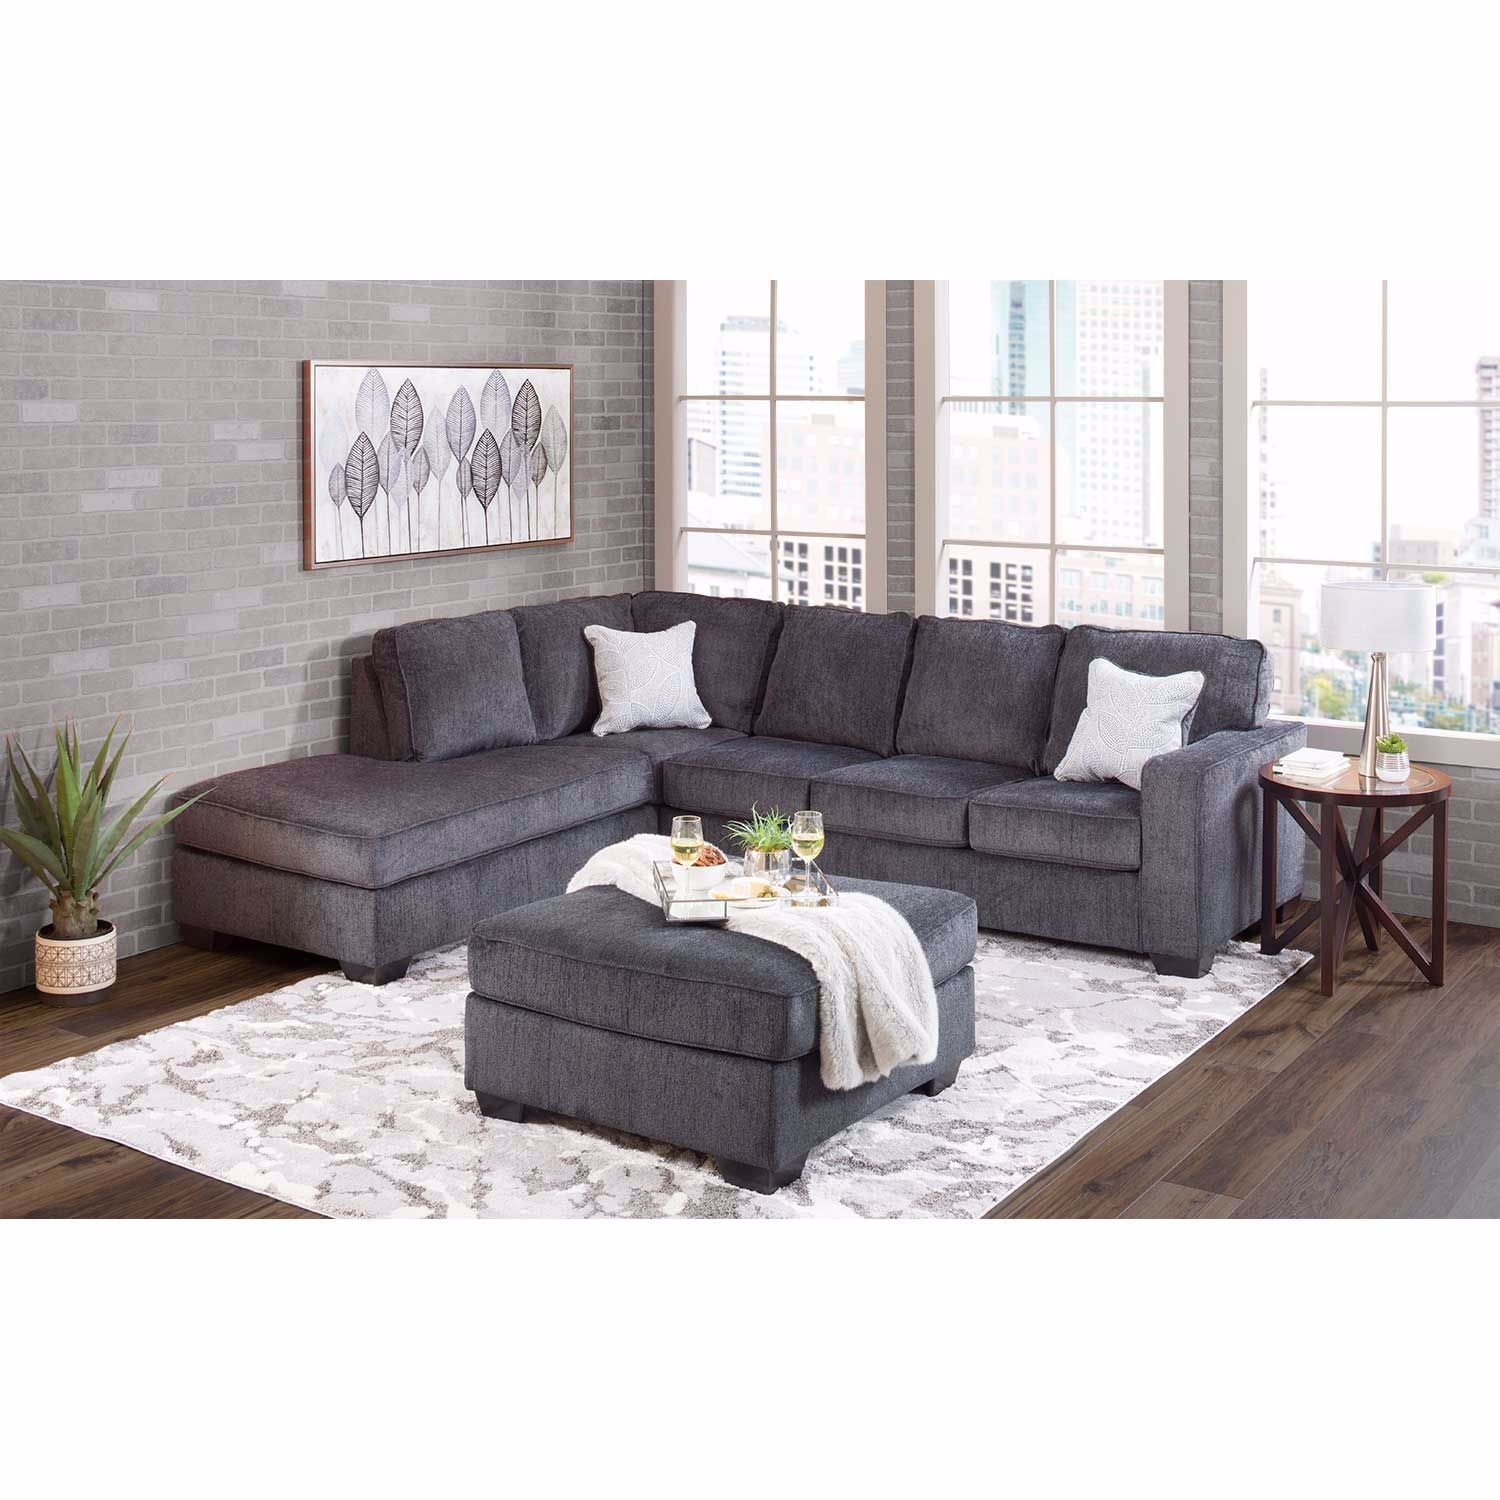 Picture of Altari Slate 2 PC Sectional with LAF Chaise